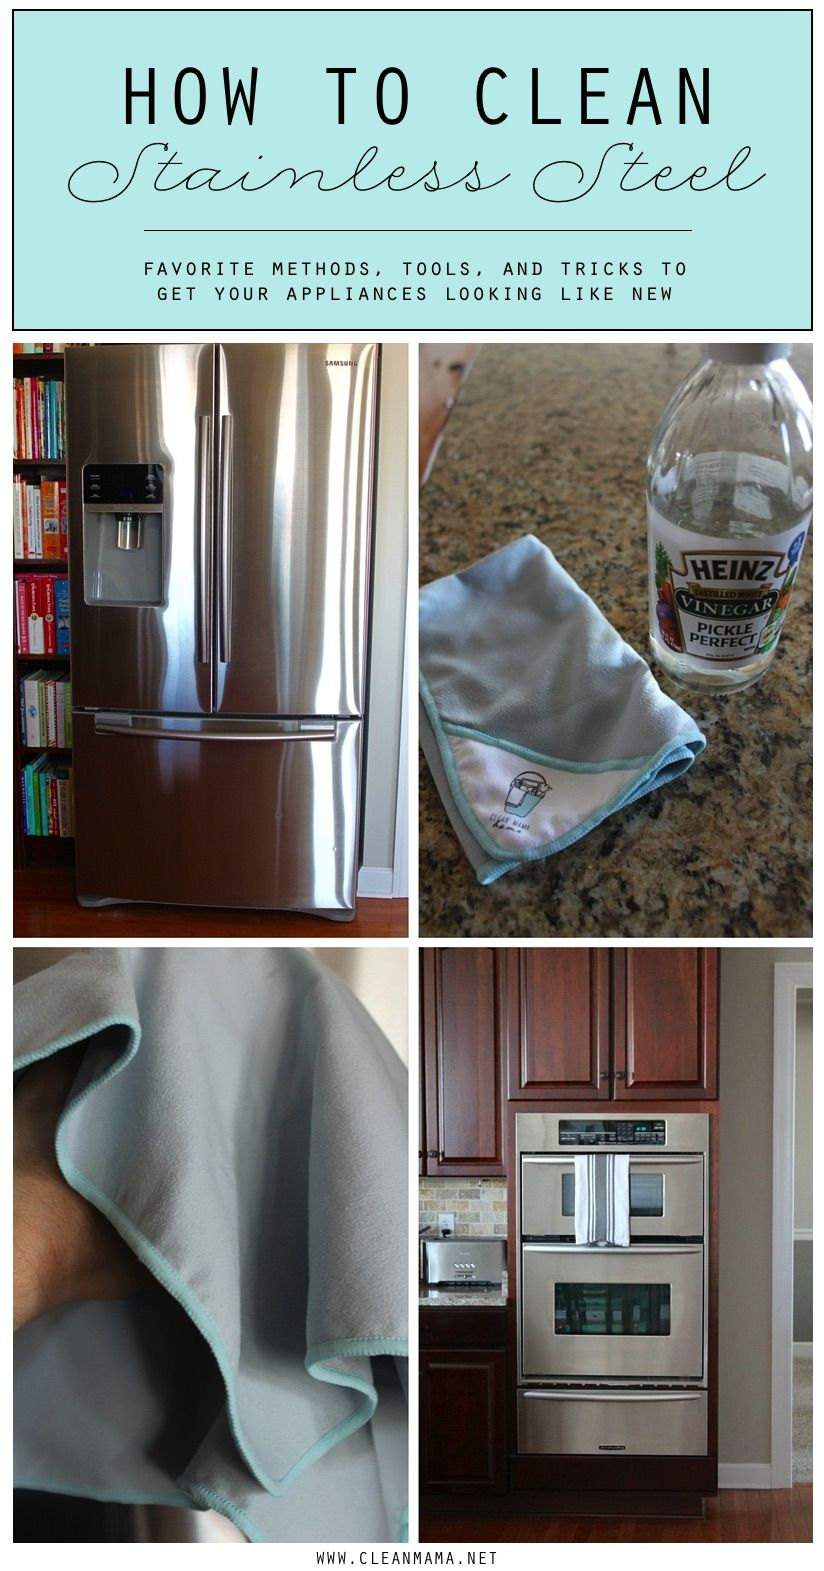 17 best images about cleaning business clean blinds 17 best images about cleaning business clean blinds cleaning checklist and norwex cloths